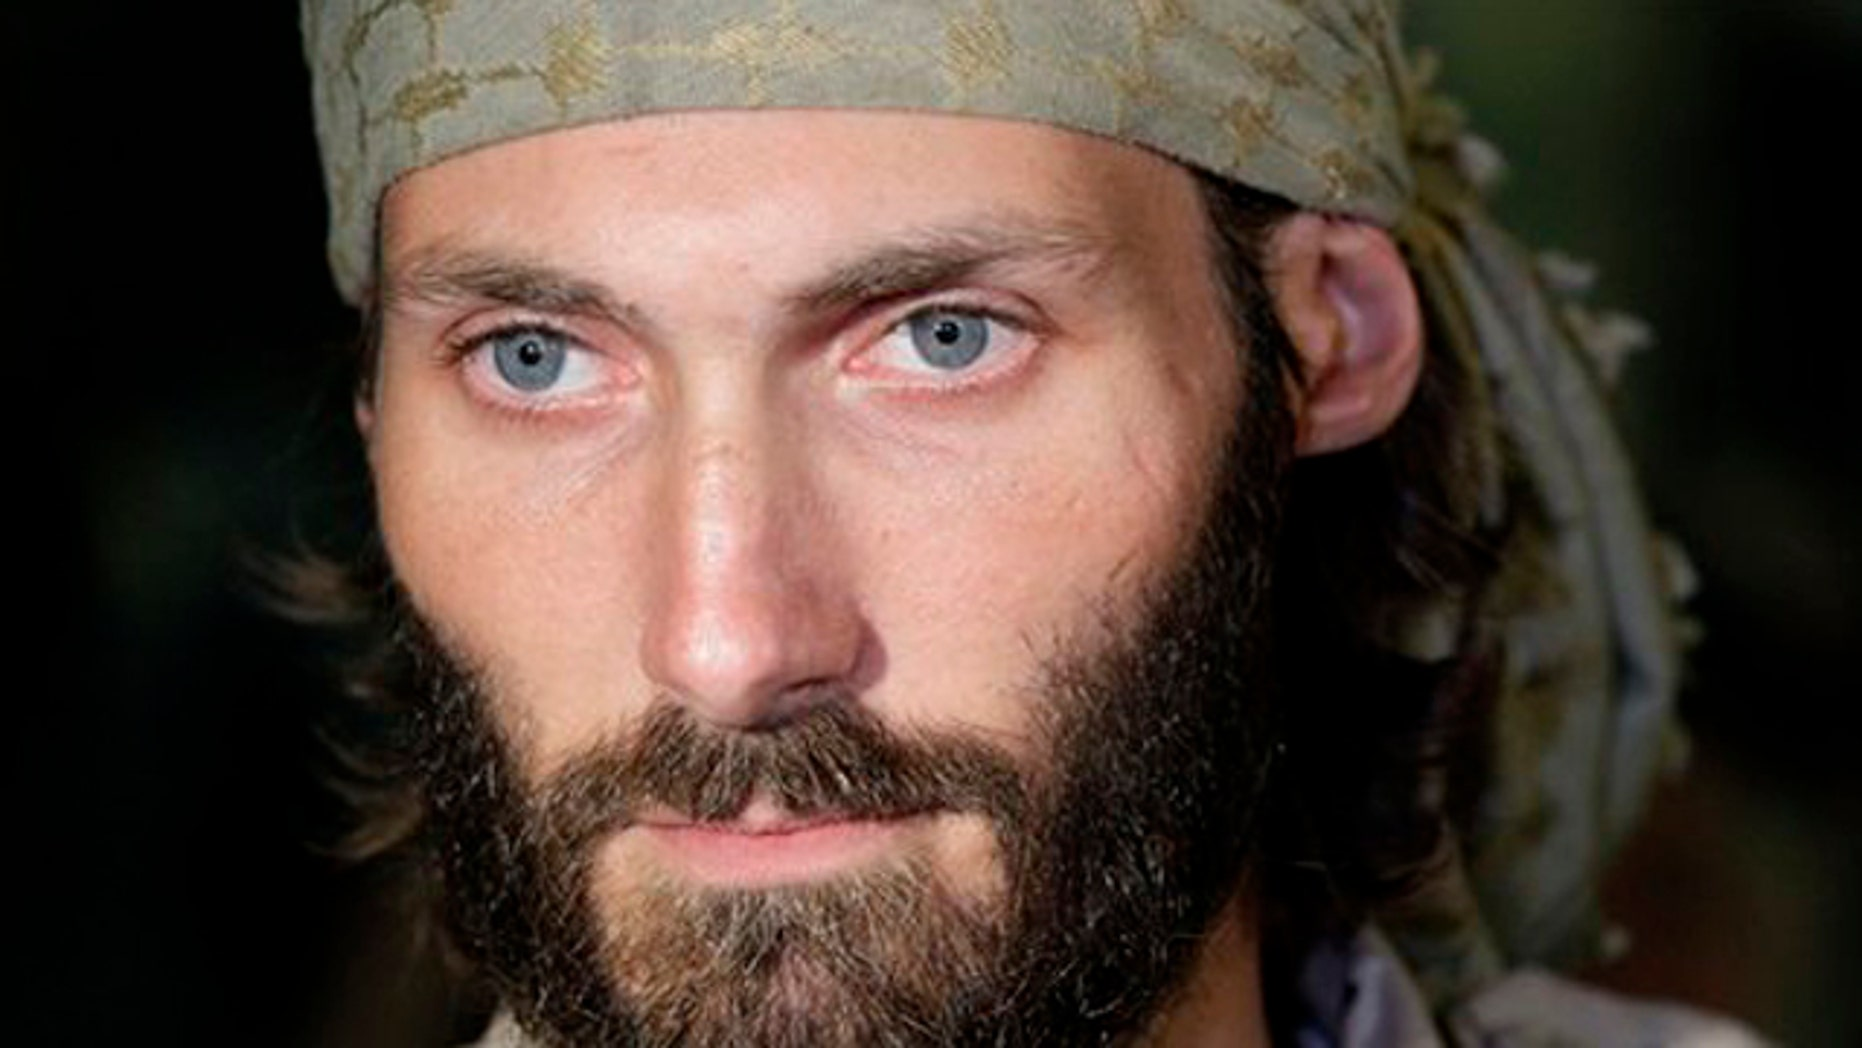 November 5, 2011: Matthew VanDyke, who spent months in Libyan prisons before joining rebel forces who opposed dictator Muammar Qaddafi, speaks with reporters after his flight arrived at Baltimore-Washington International Airport in Linthicum, Md.